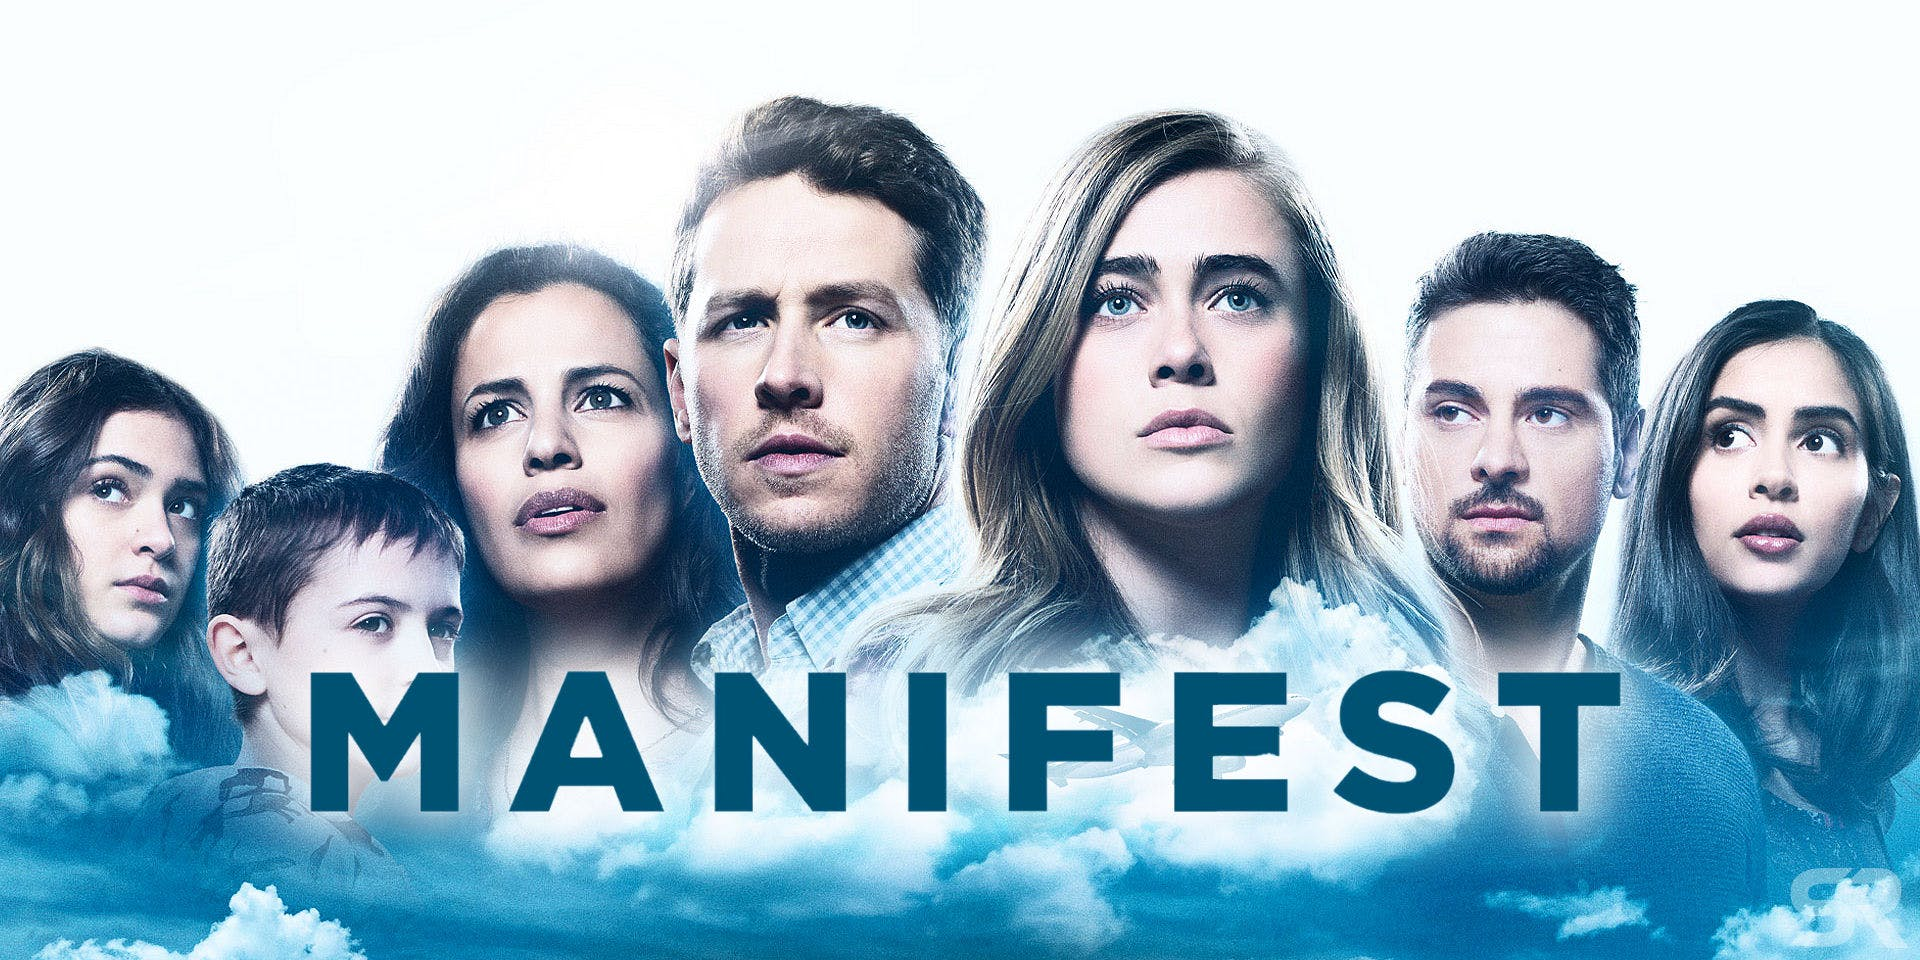 Manifest - As Trina Vasik on Season 2 of Manifest on NBC.